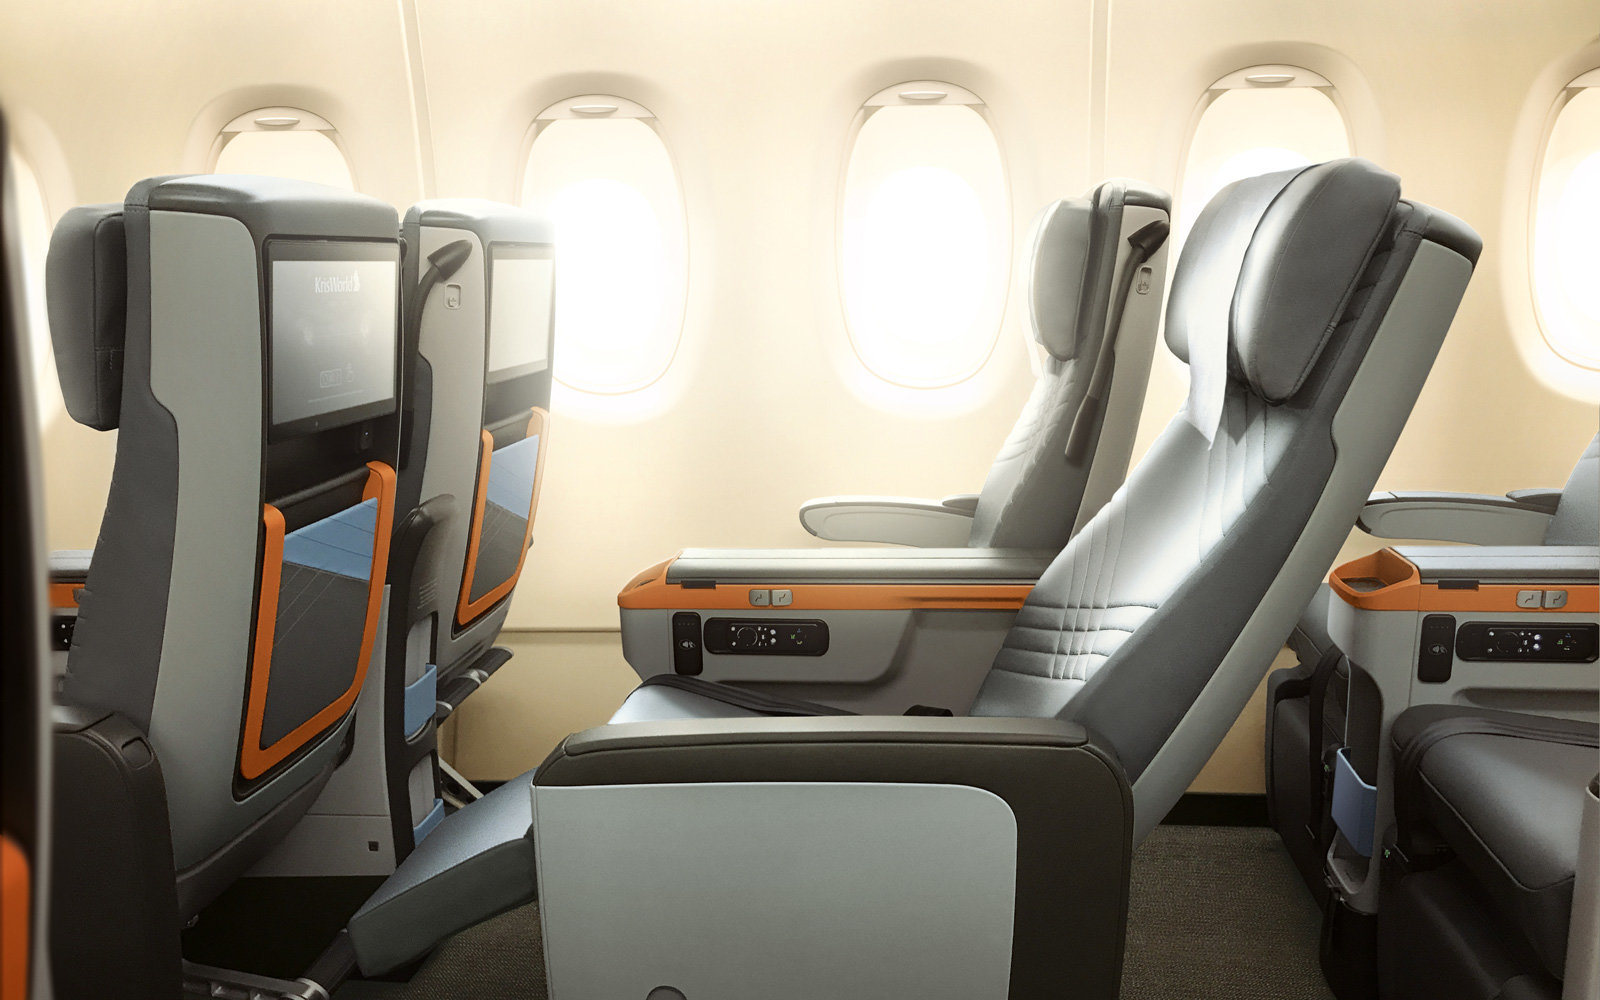 Singapore Airlines its new Airbus A380 design